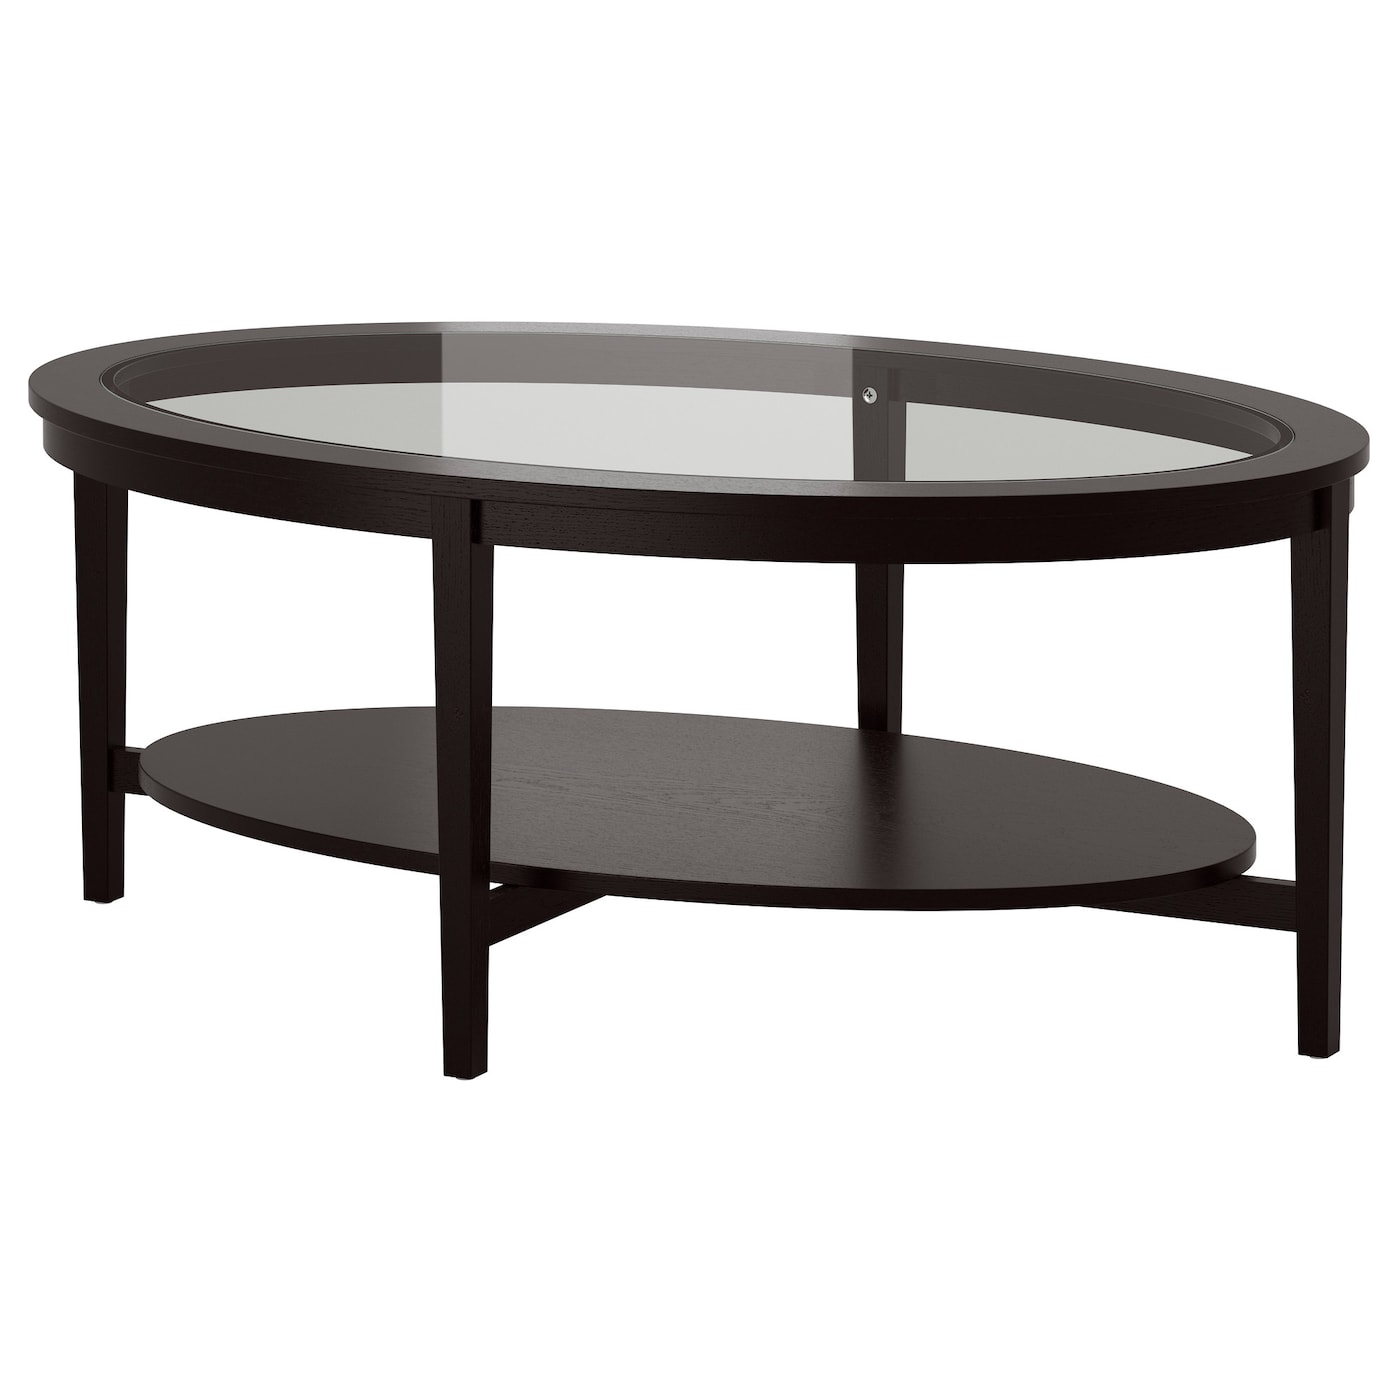 wooden coffee tables. ikea malmsta coffee table veneered surface; gives the a natural look and feel. wooden tables b